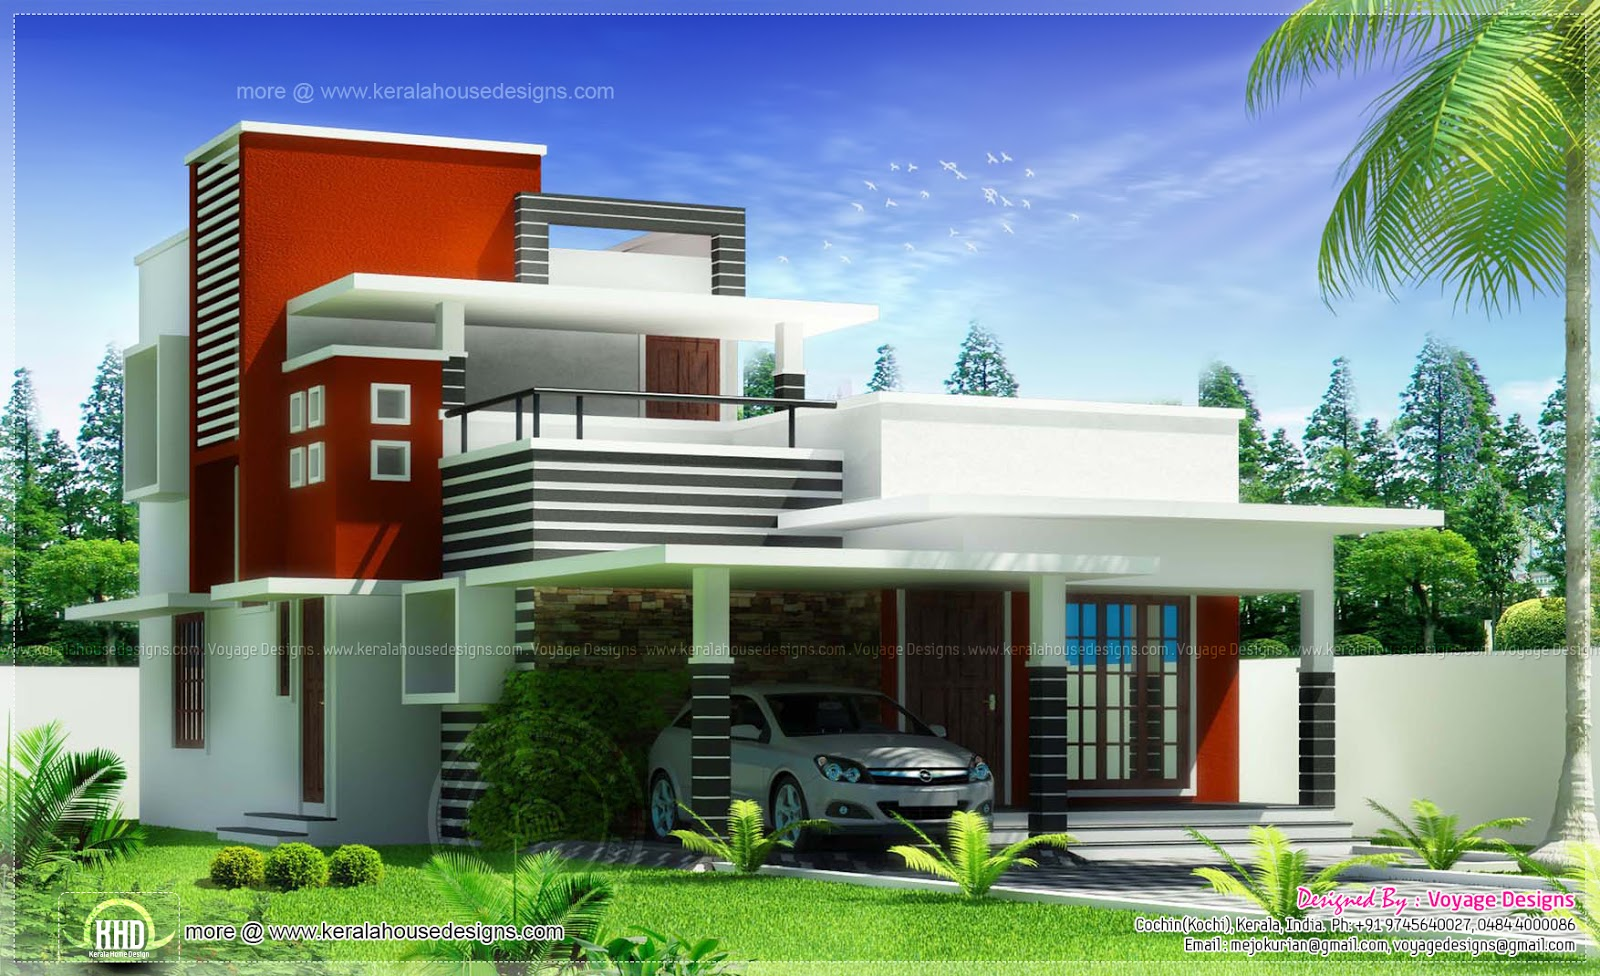 3 bed room contemporary style house kerala home design for Home designs 2017 kerala